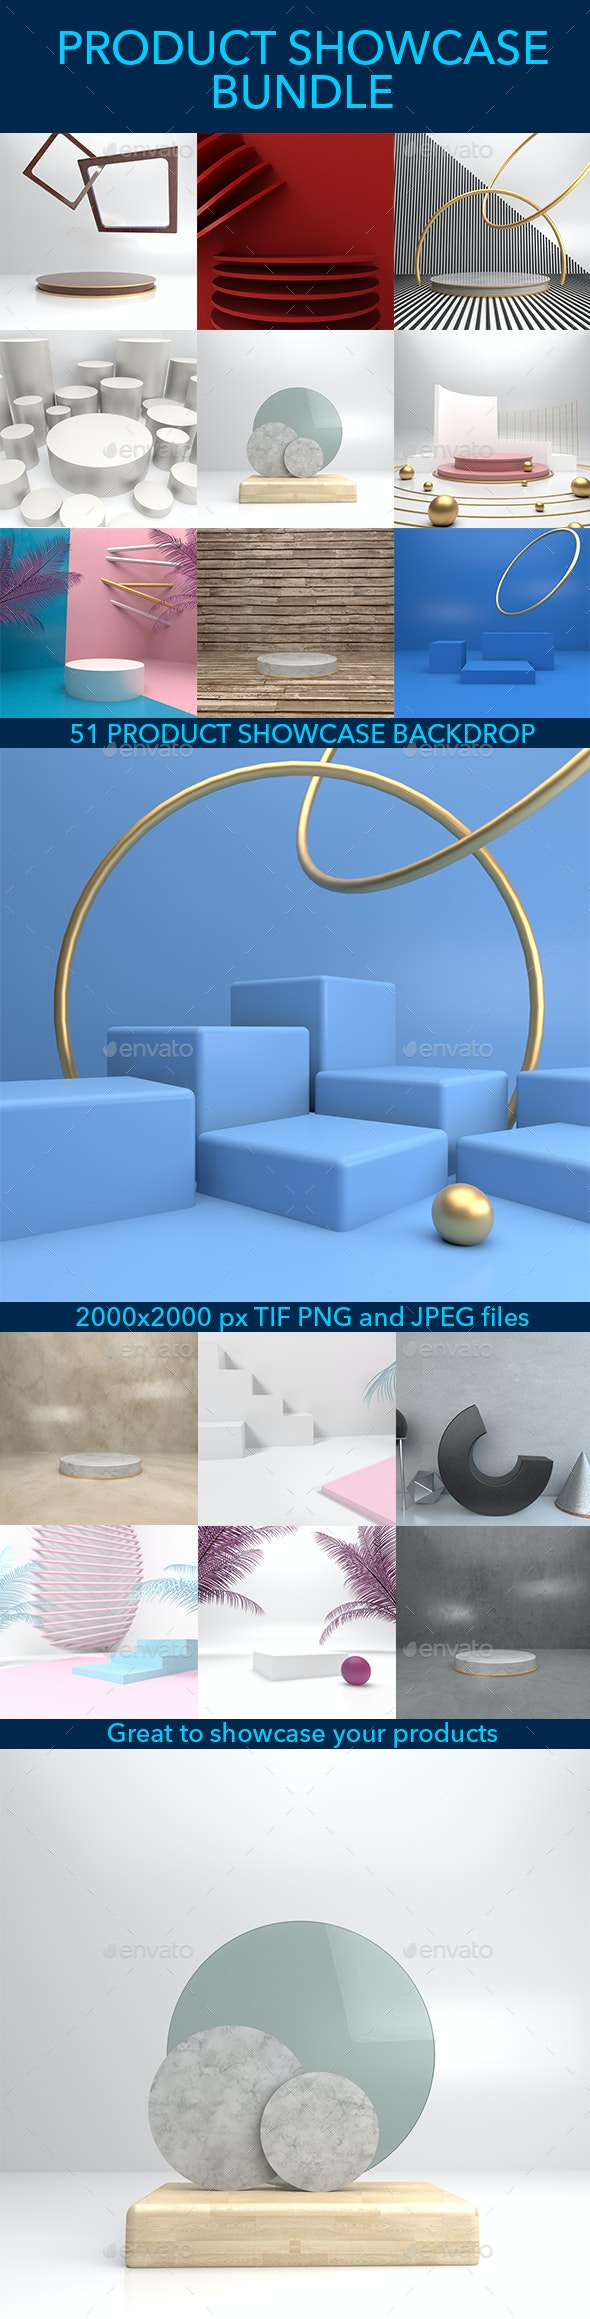 51 3d Product Showcase Background Bundle